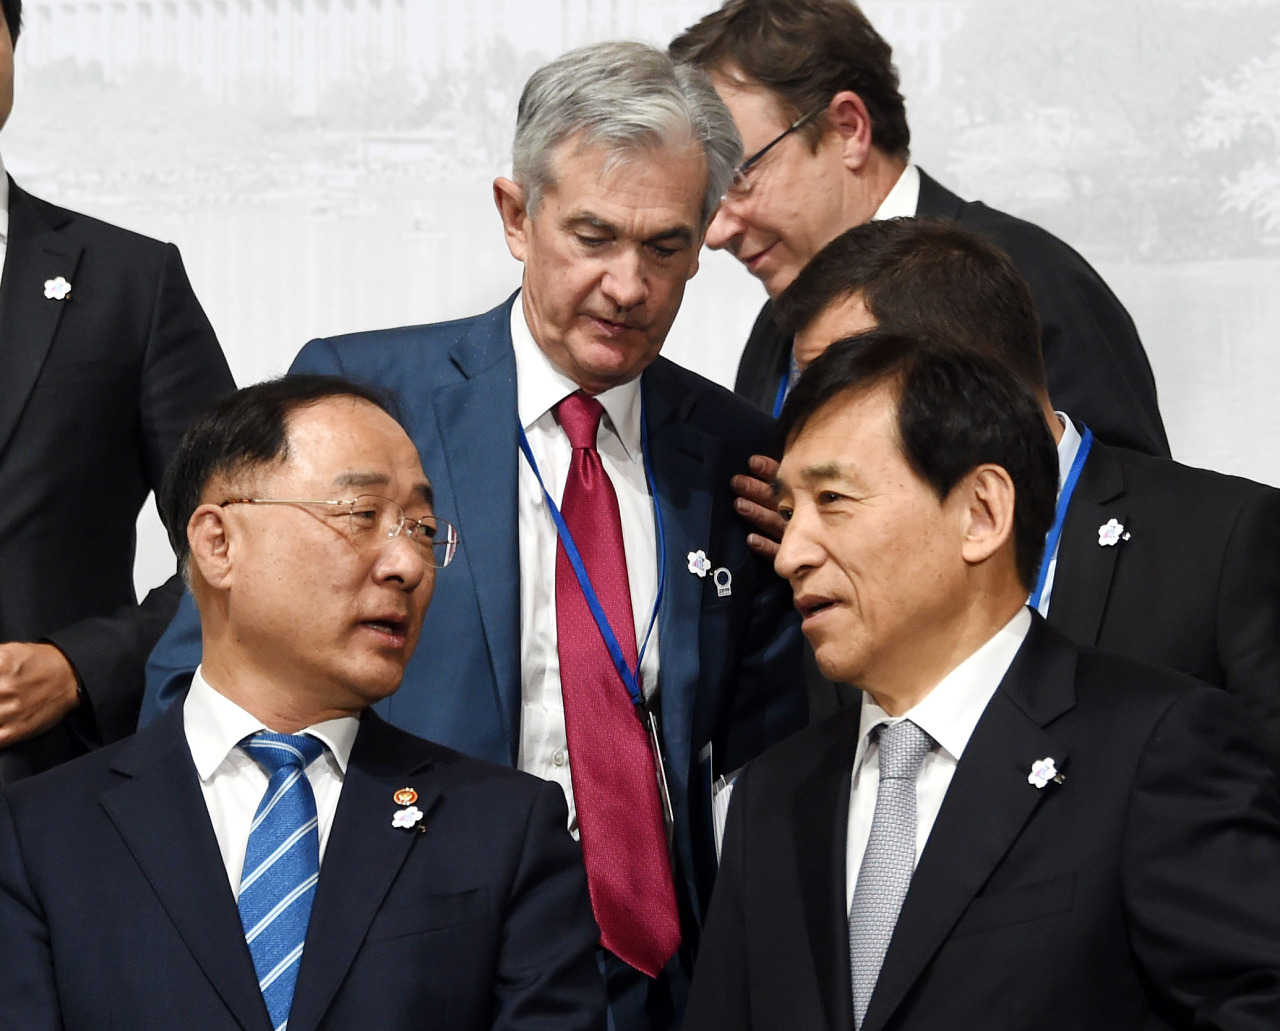 Deputy Prime Minister and Finance Minister Hong Nam-ki (left) and Bank of Korea Gov. Lee Ju-yeol attend the group photo session at the Group of 20 summit for finance ministers and central bank governors on Friday. (Ministry of Economy and Finance)